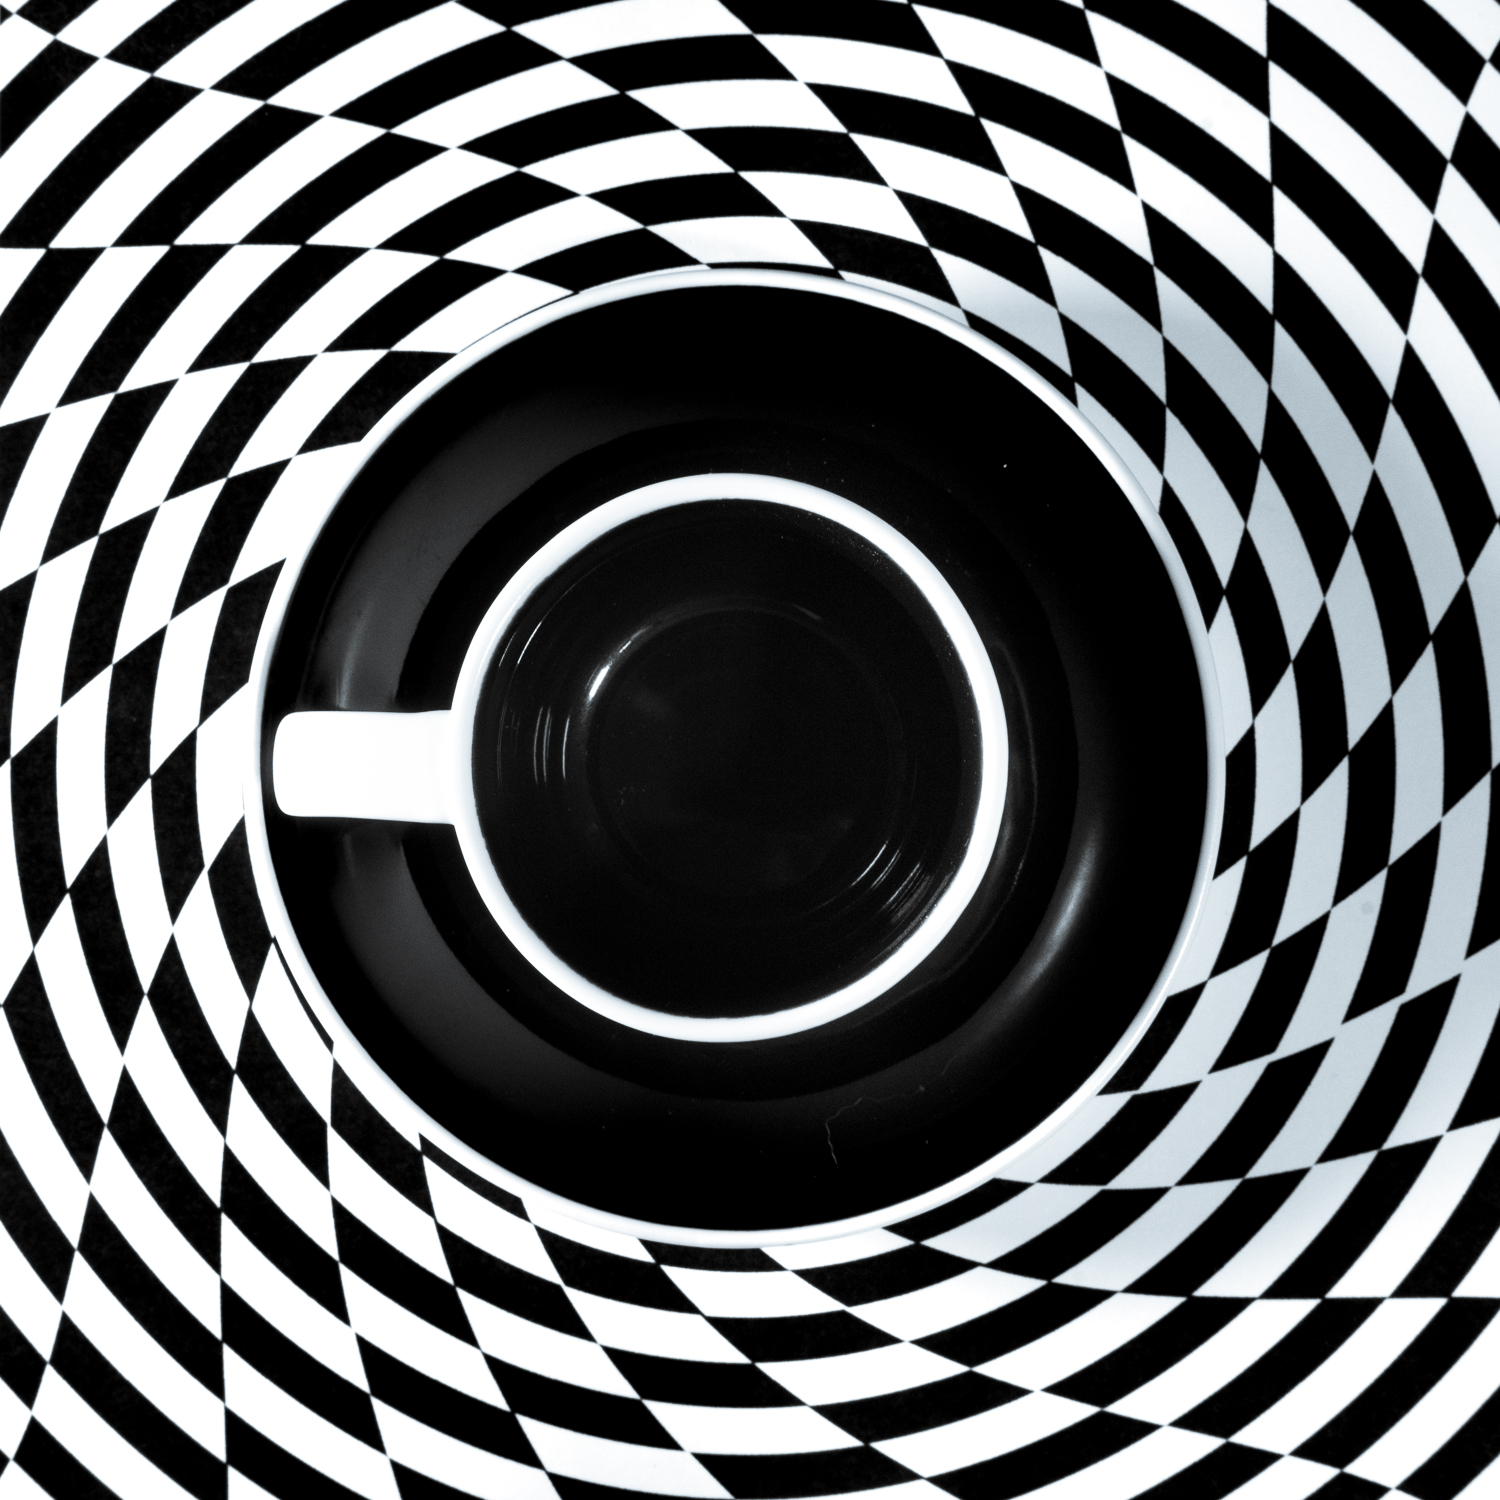 Black and White Unite IX Draining the vortex of coffee